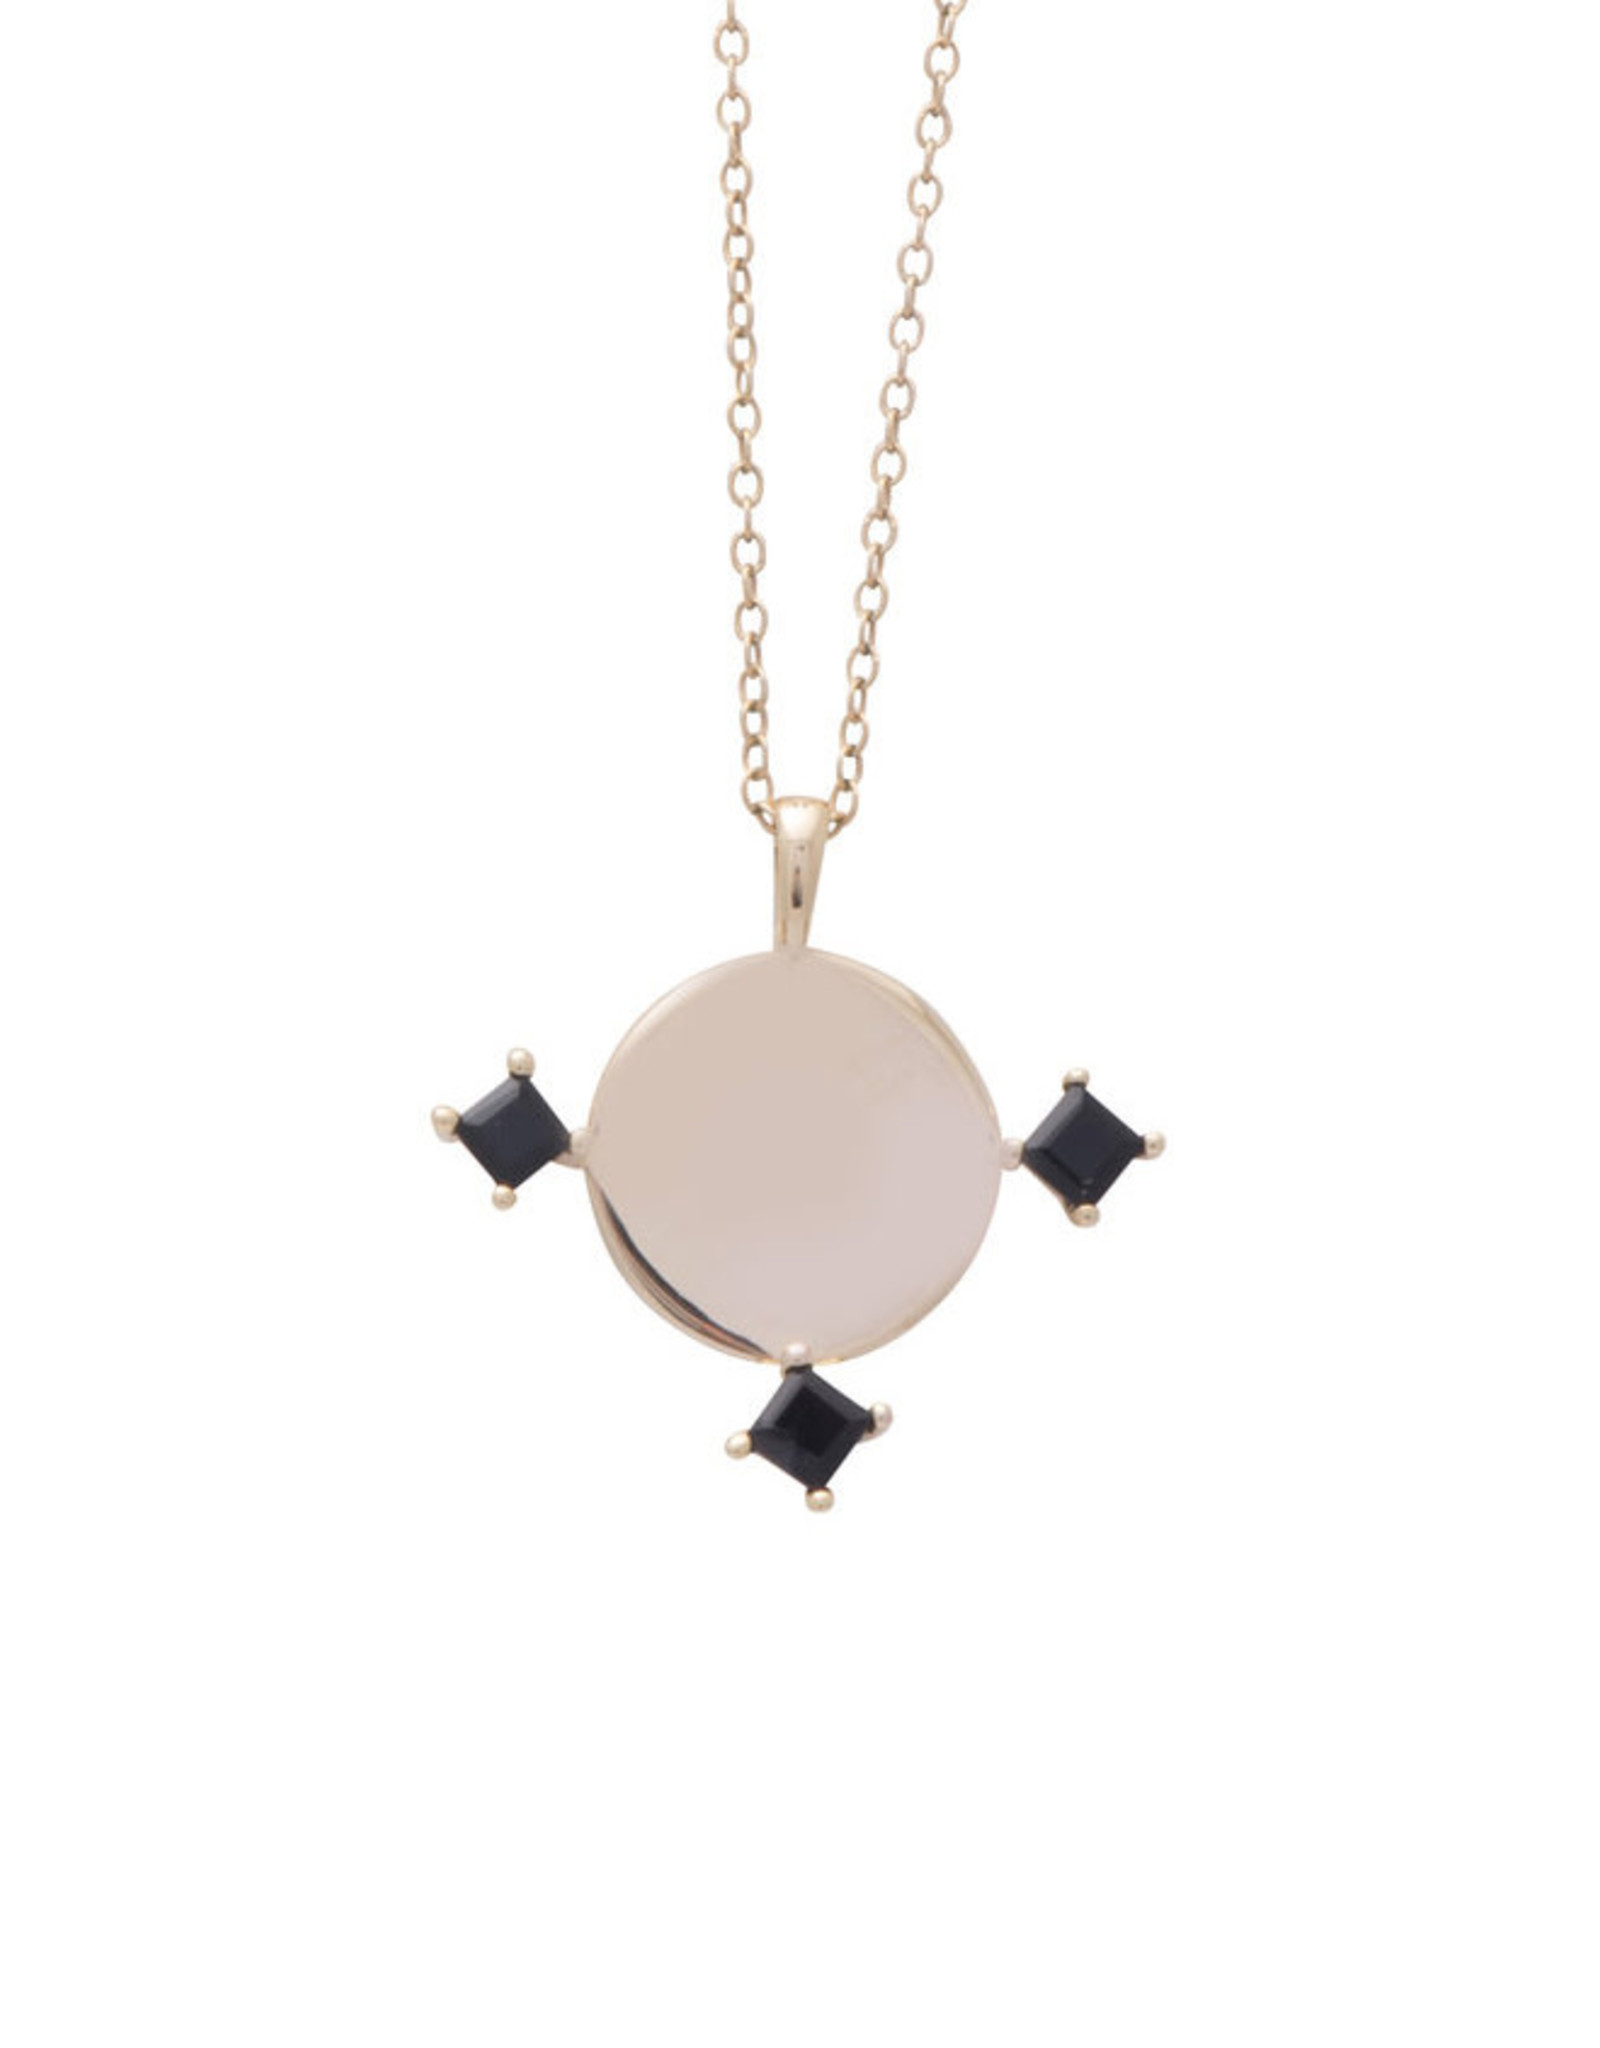 Sarah Mulder Jewelry Gold Imperial Necklace - Onyx